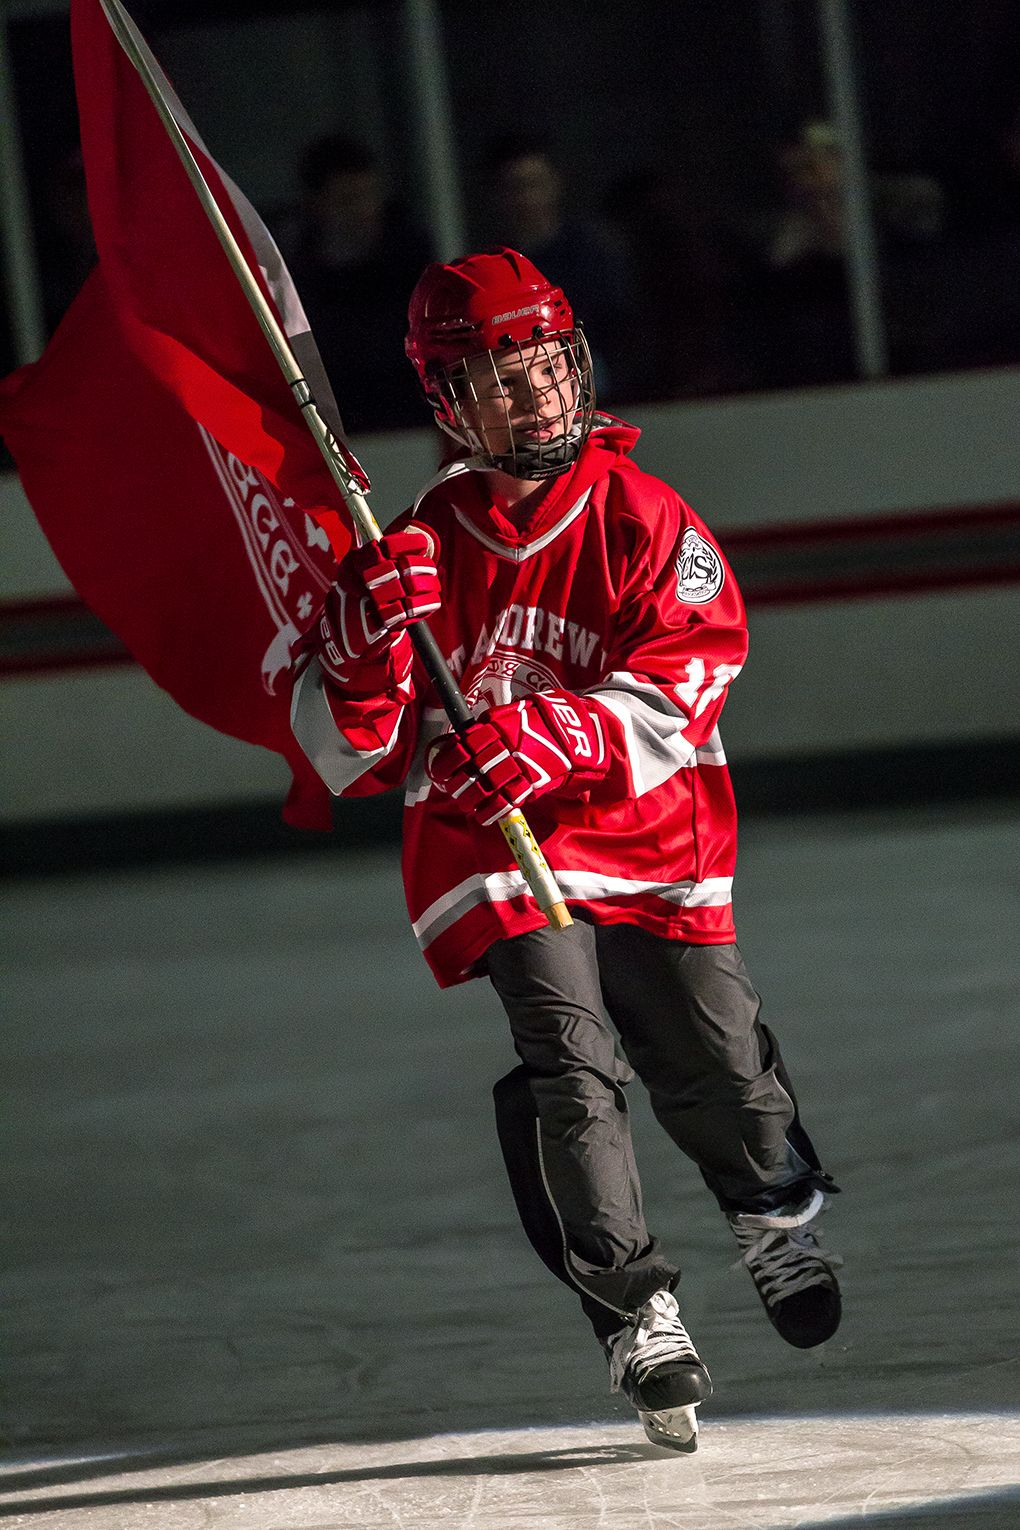 Fionn Keon, grade 6, a member of U12 Hockey